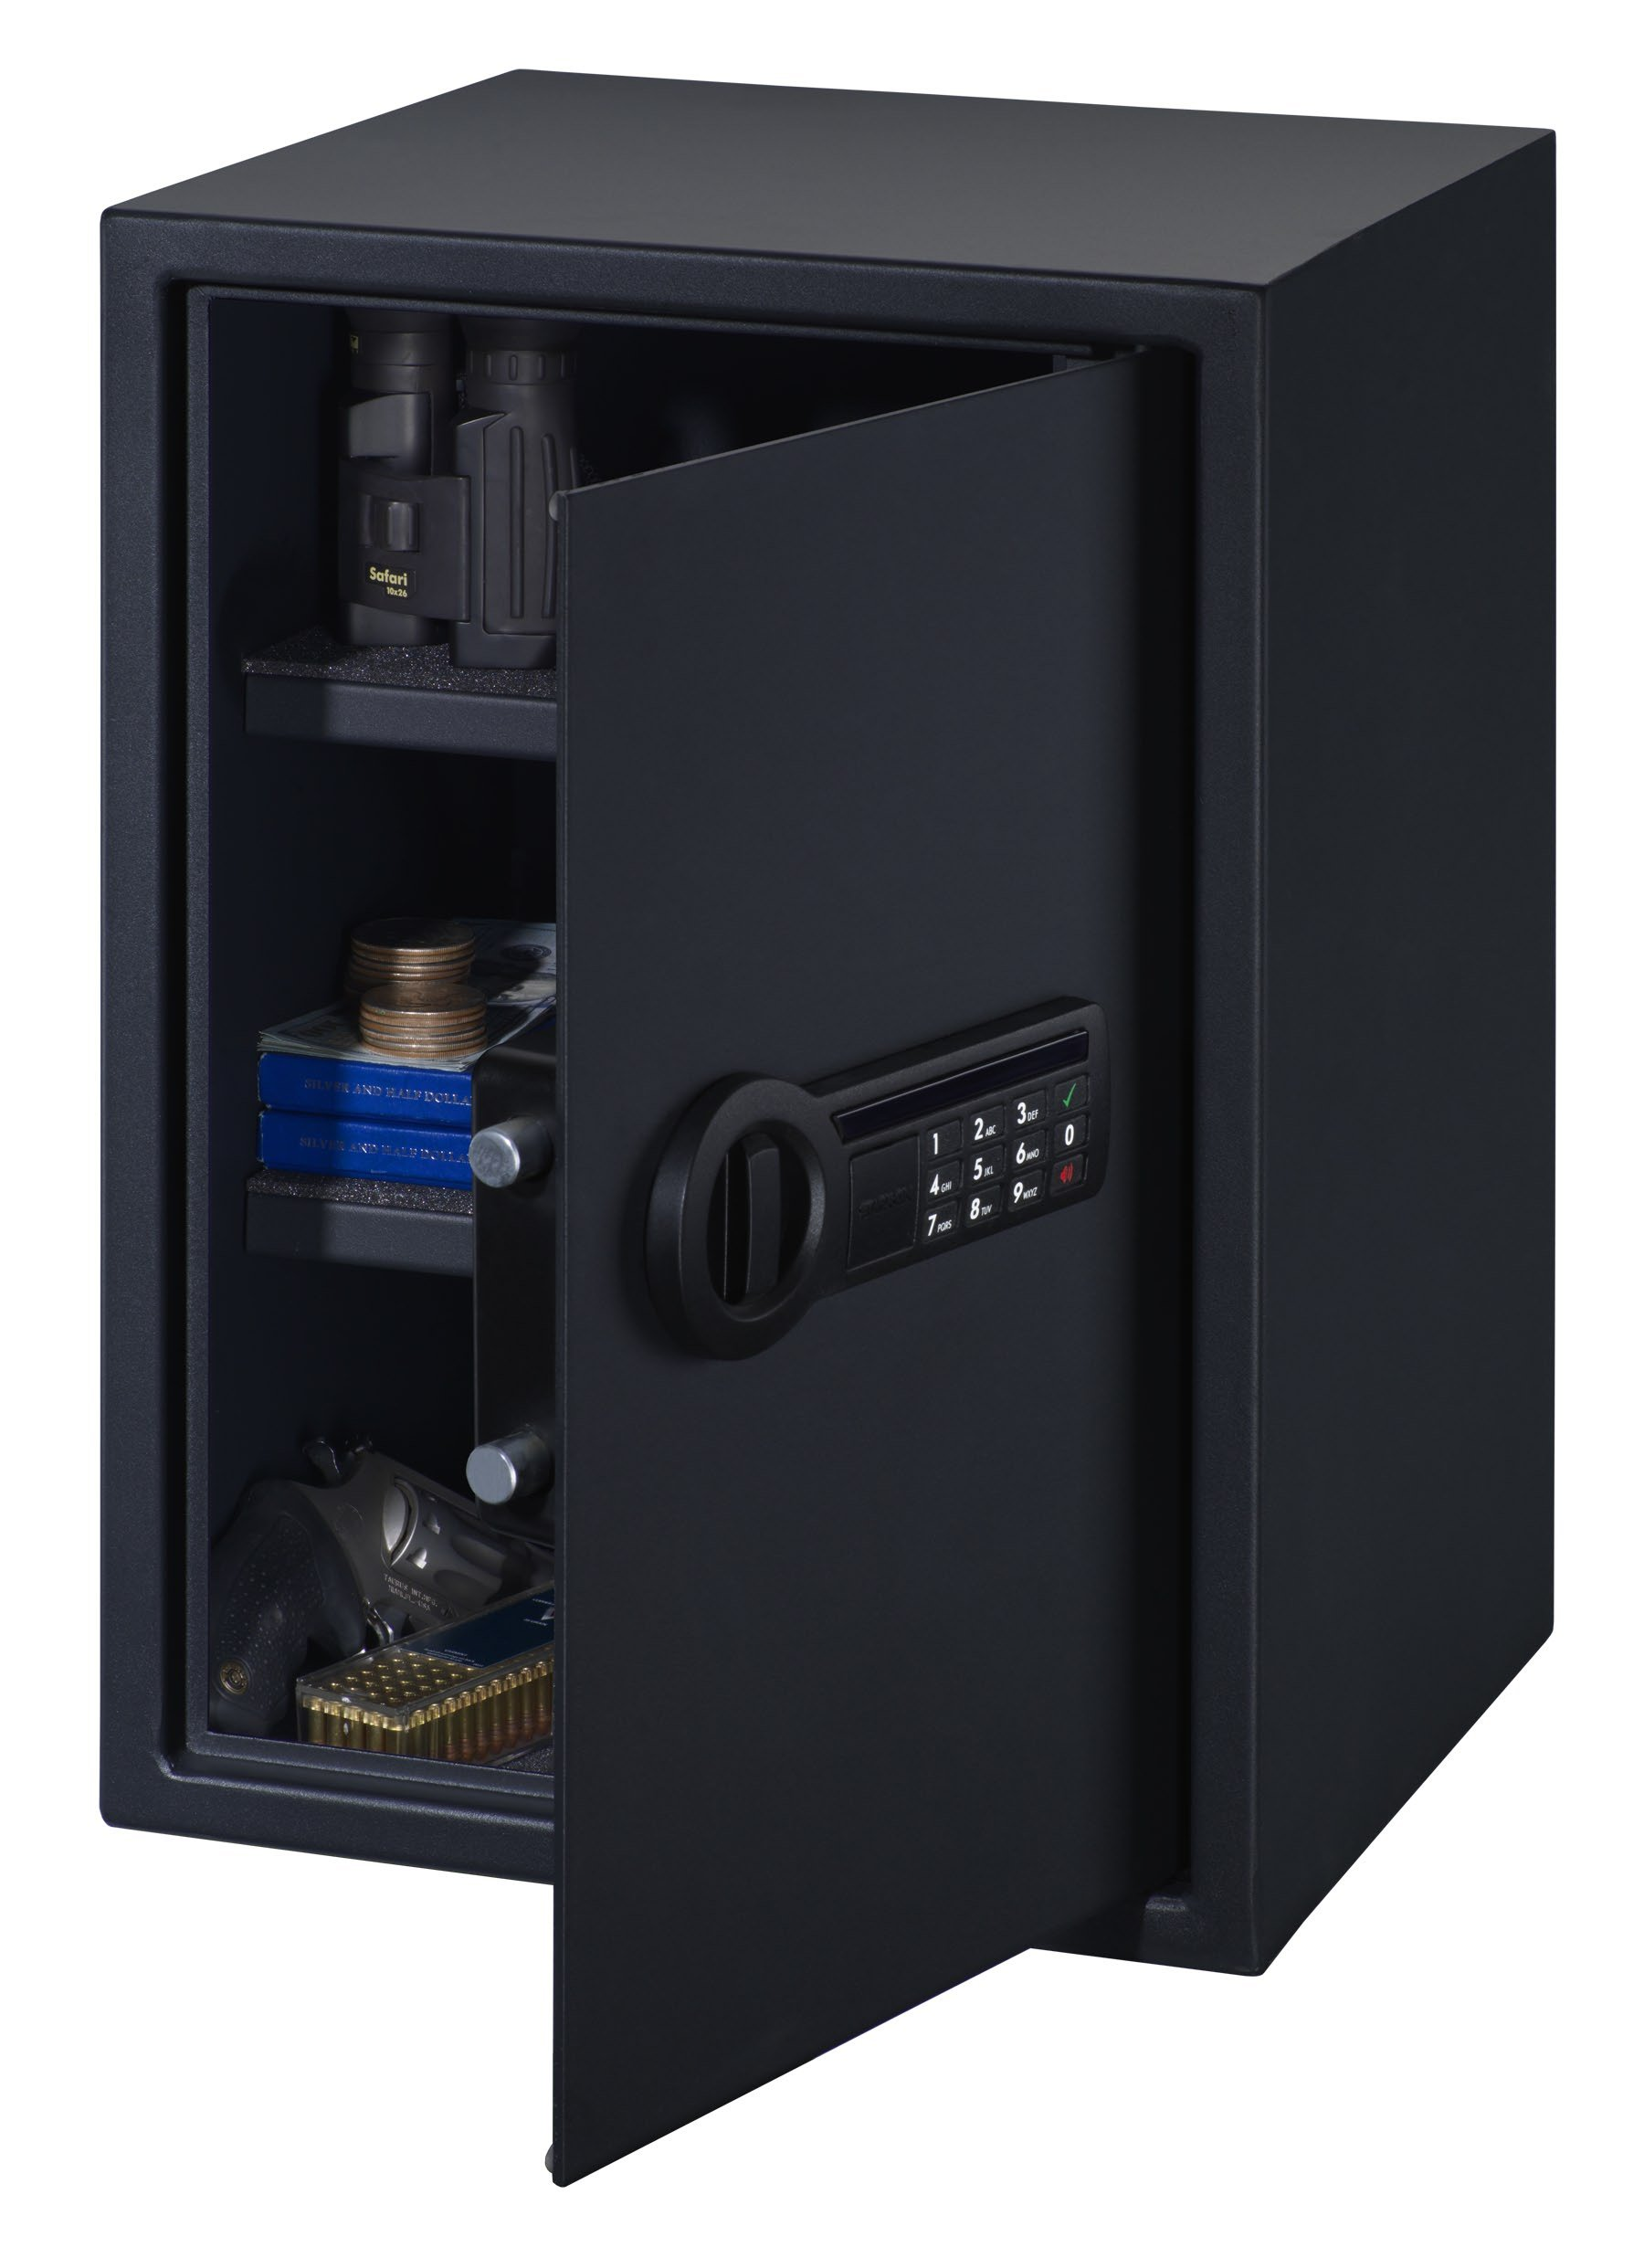 Stack-On PS-1520 Super-Sized Personal Safe with Electronic Lock by Stack-On